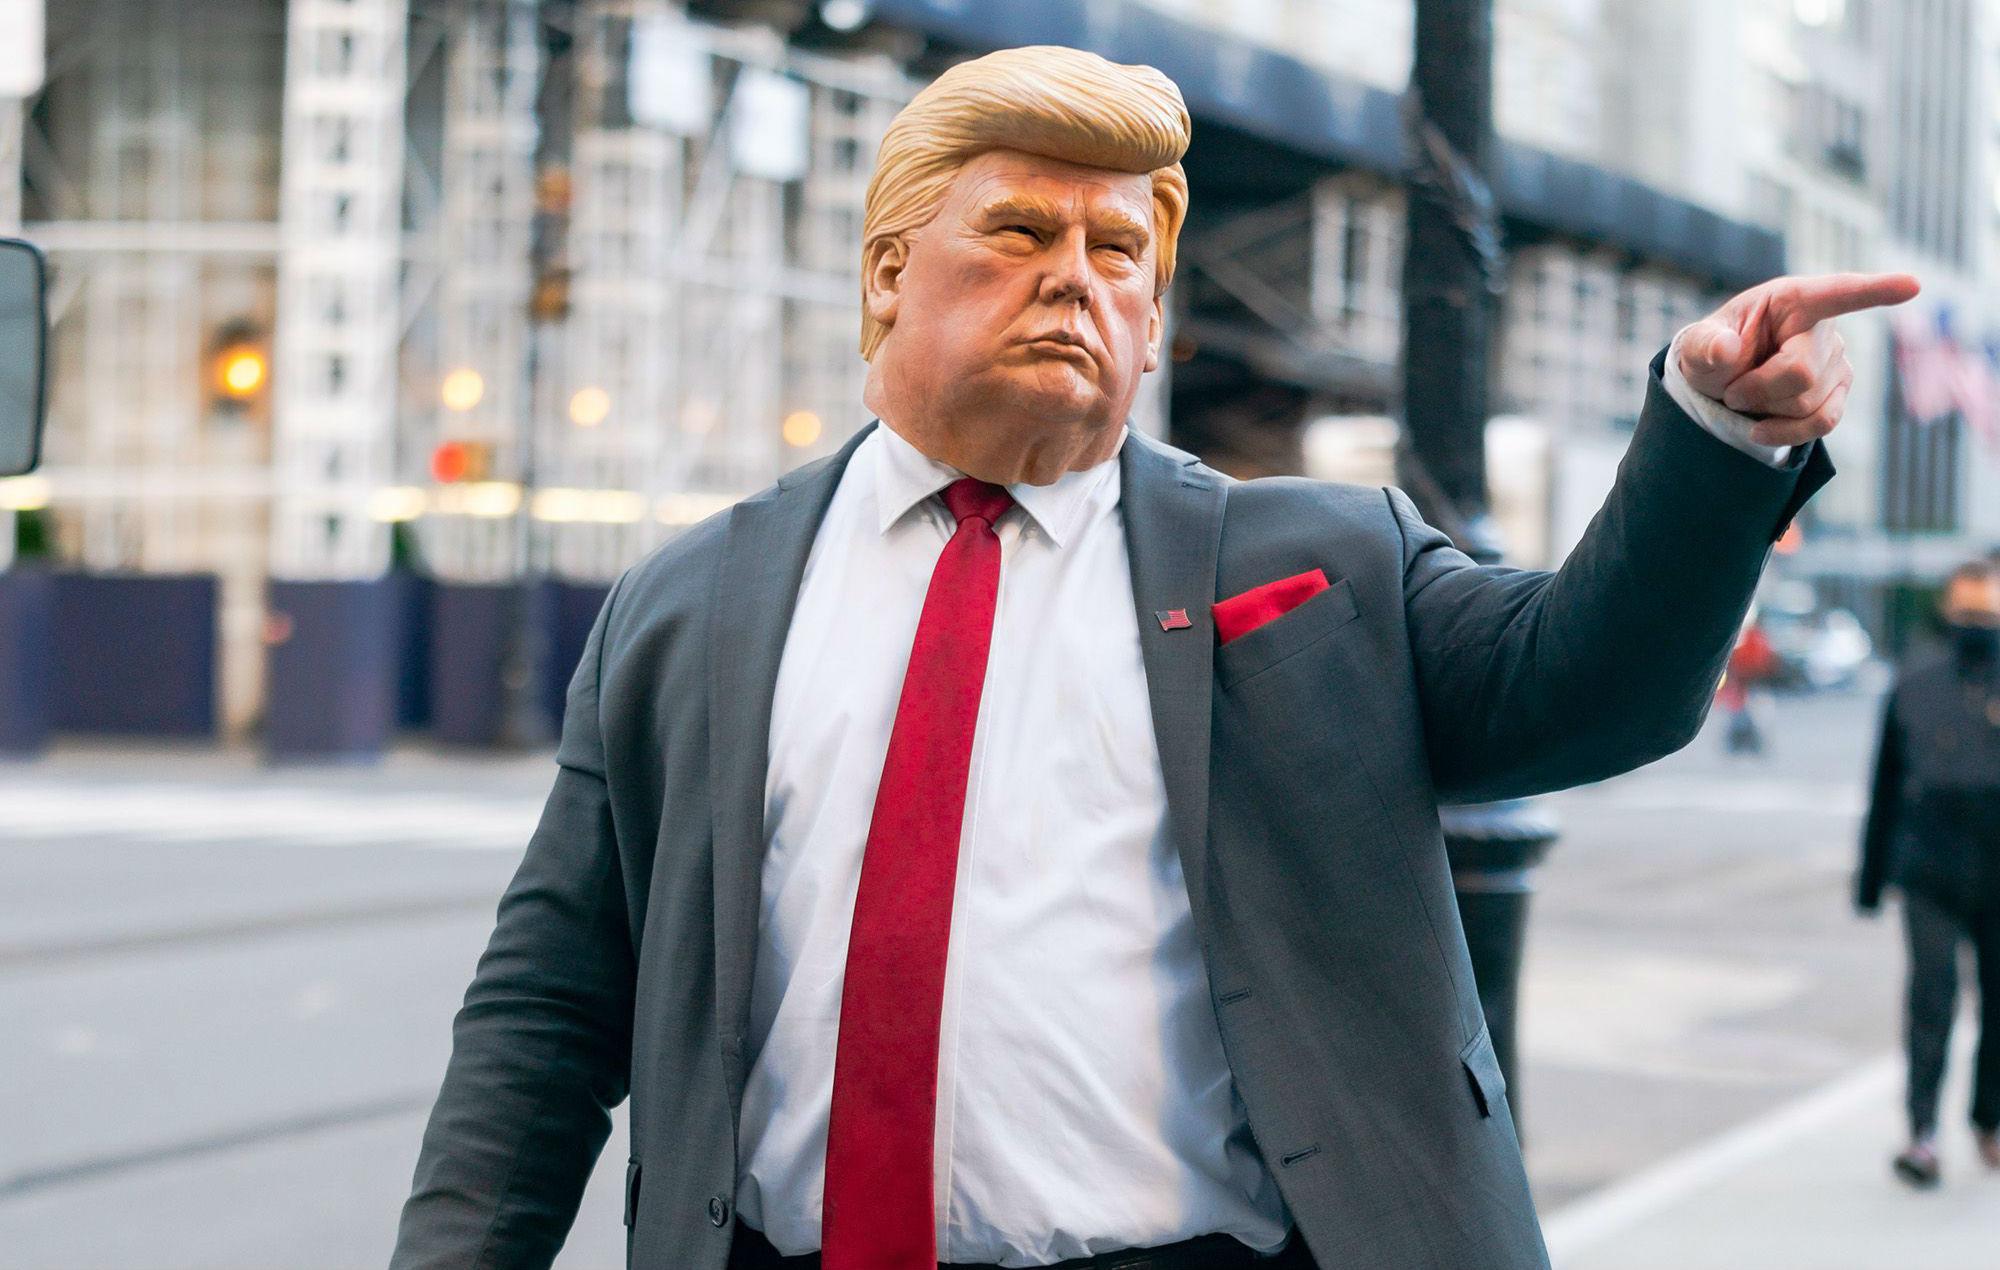 Annus horror-bilis: your topical options for a 2020 Halloween costume